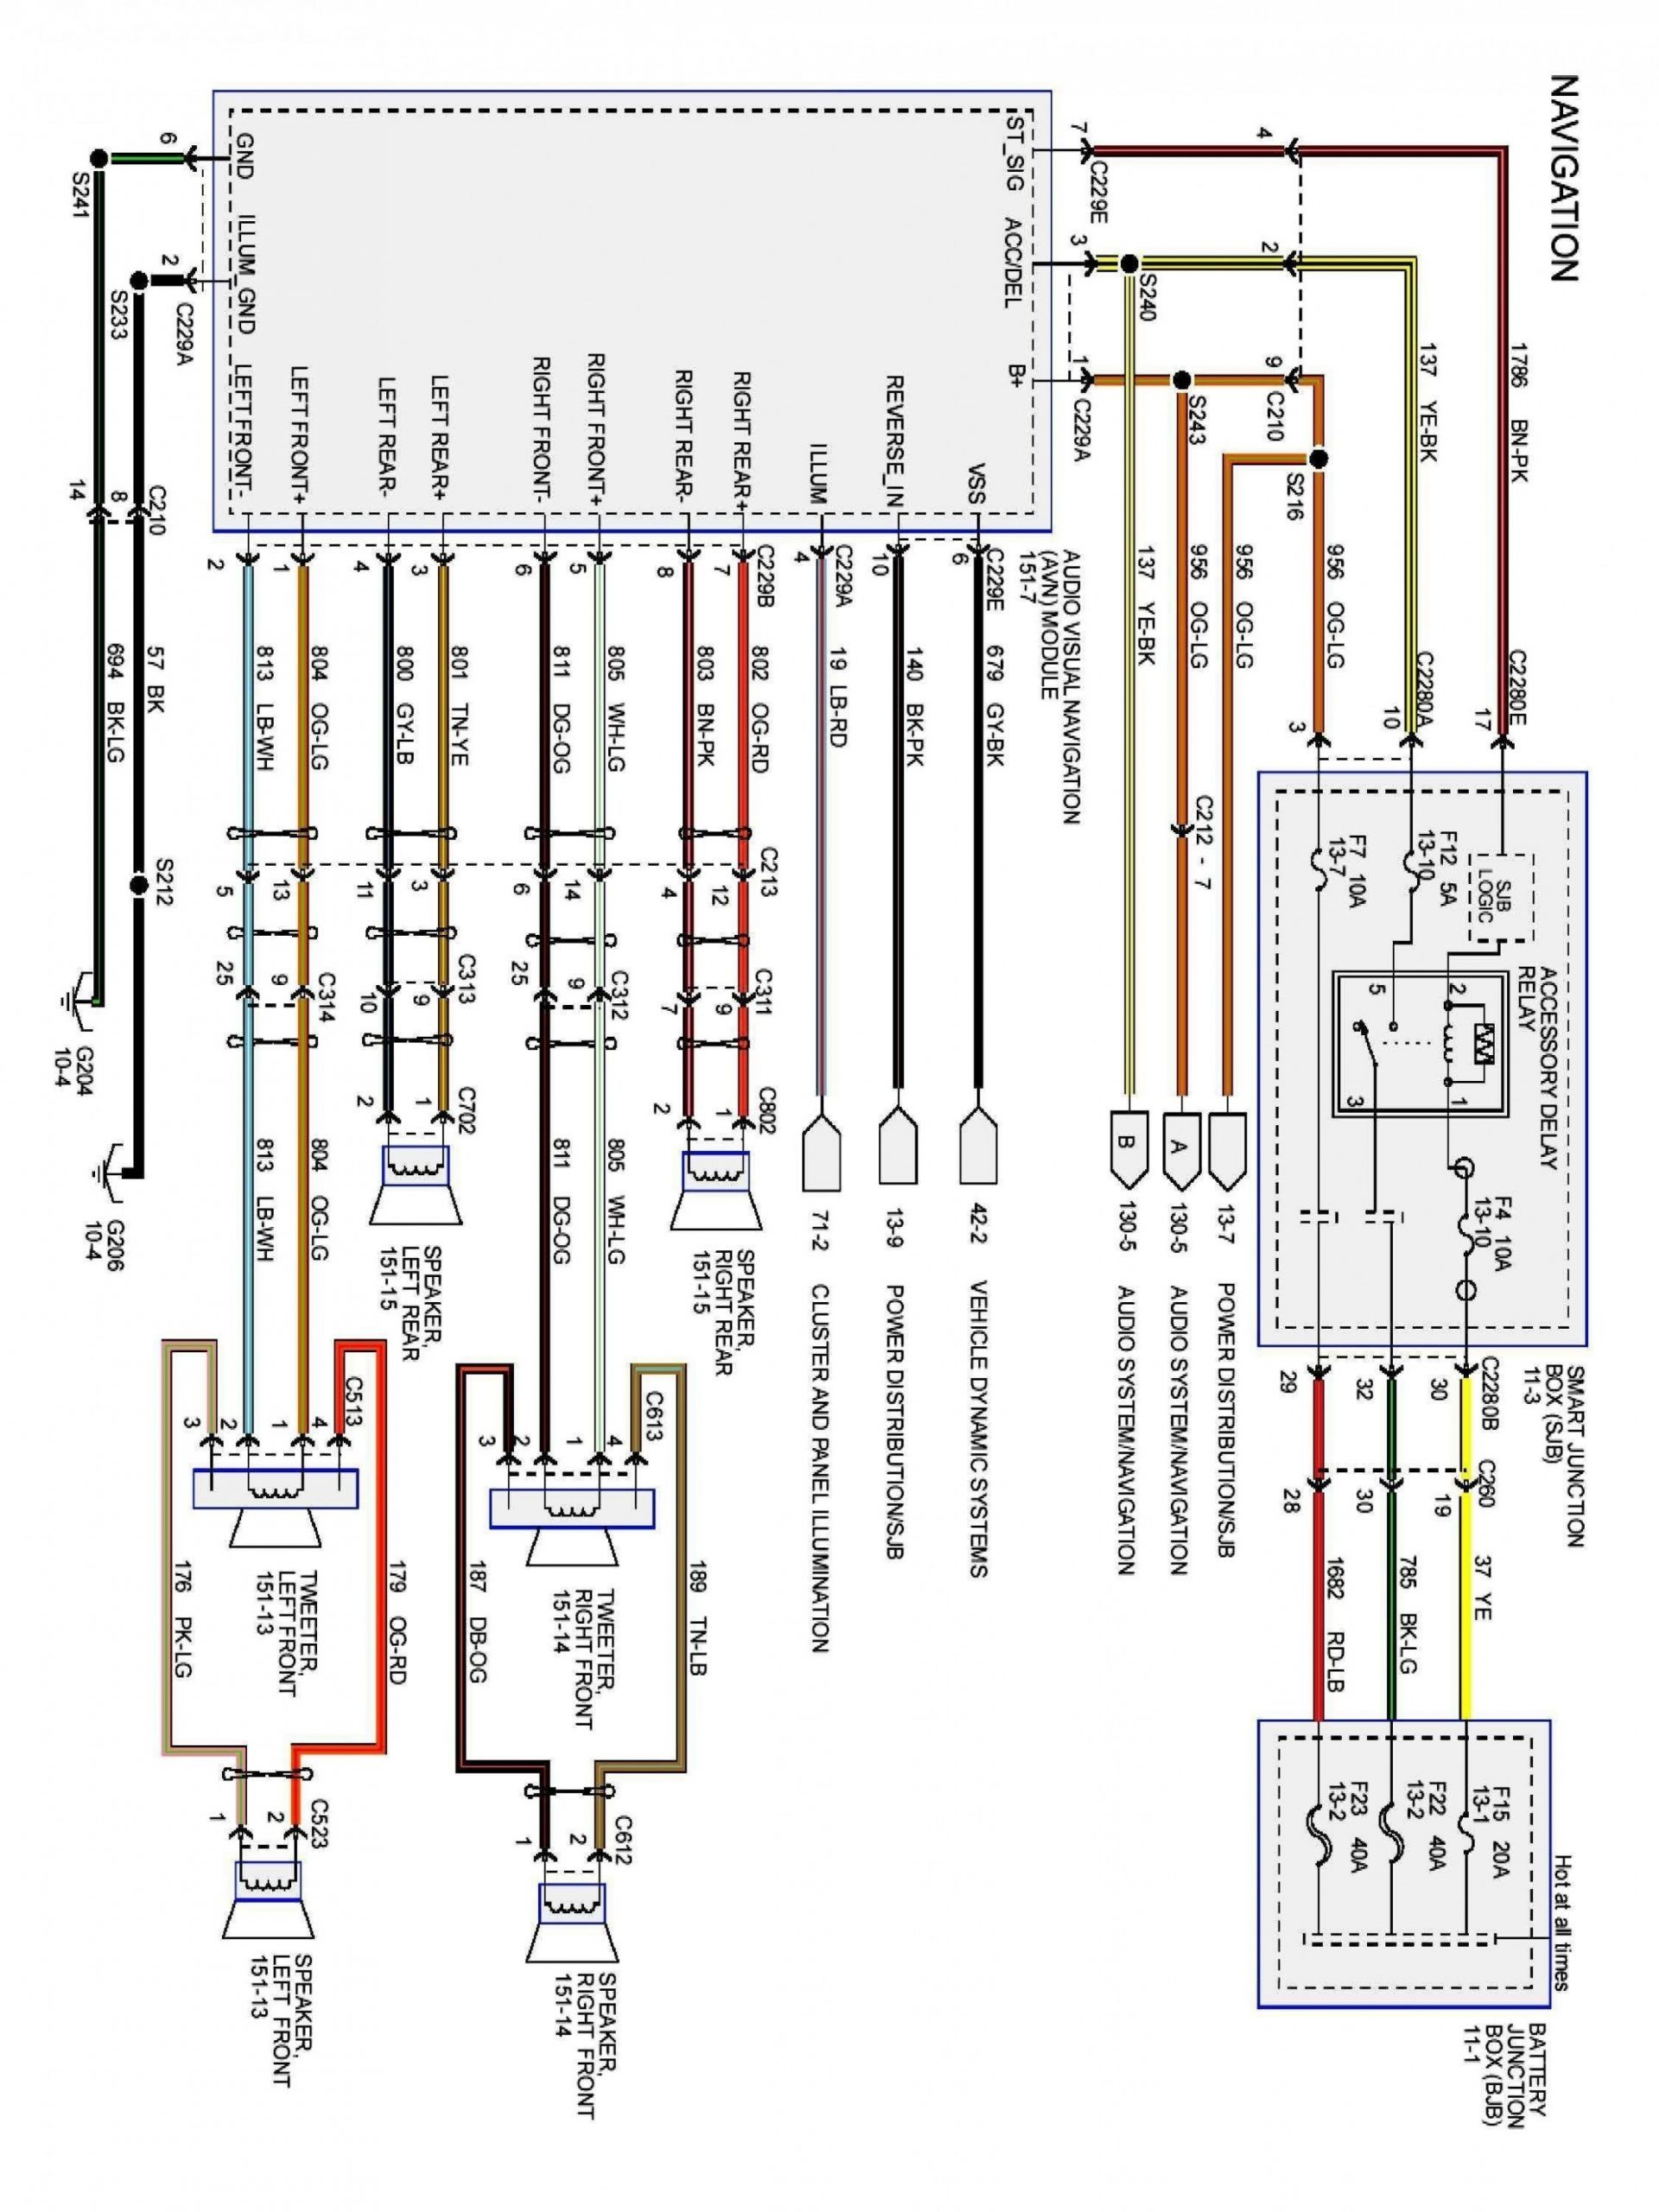 [DIAGRAM_1CA]  Engine Diagram 10 Ford Escape Manual di 2020 | 2008 Escape Wiring Diagram |  | Pinterest